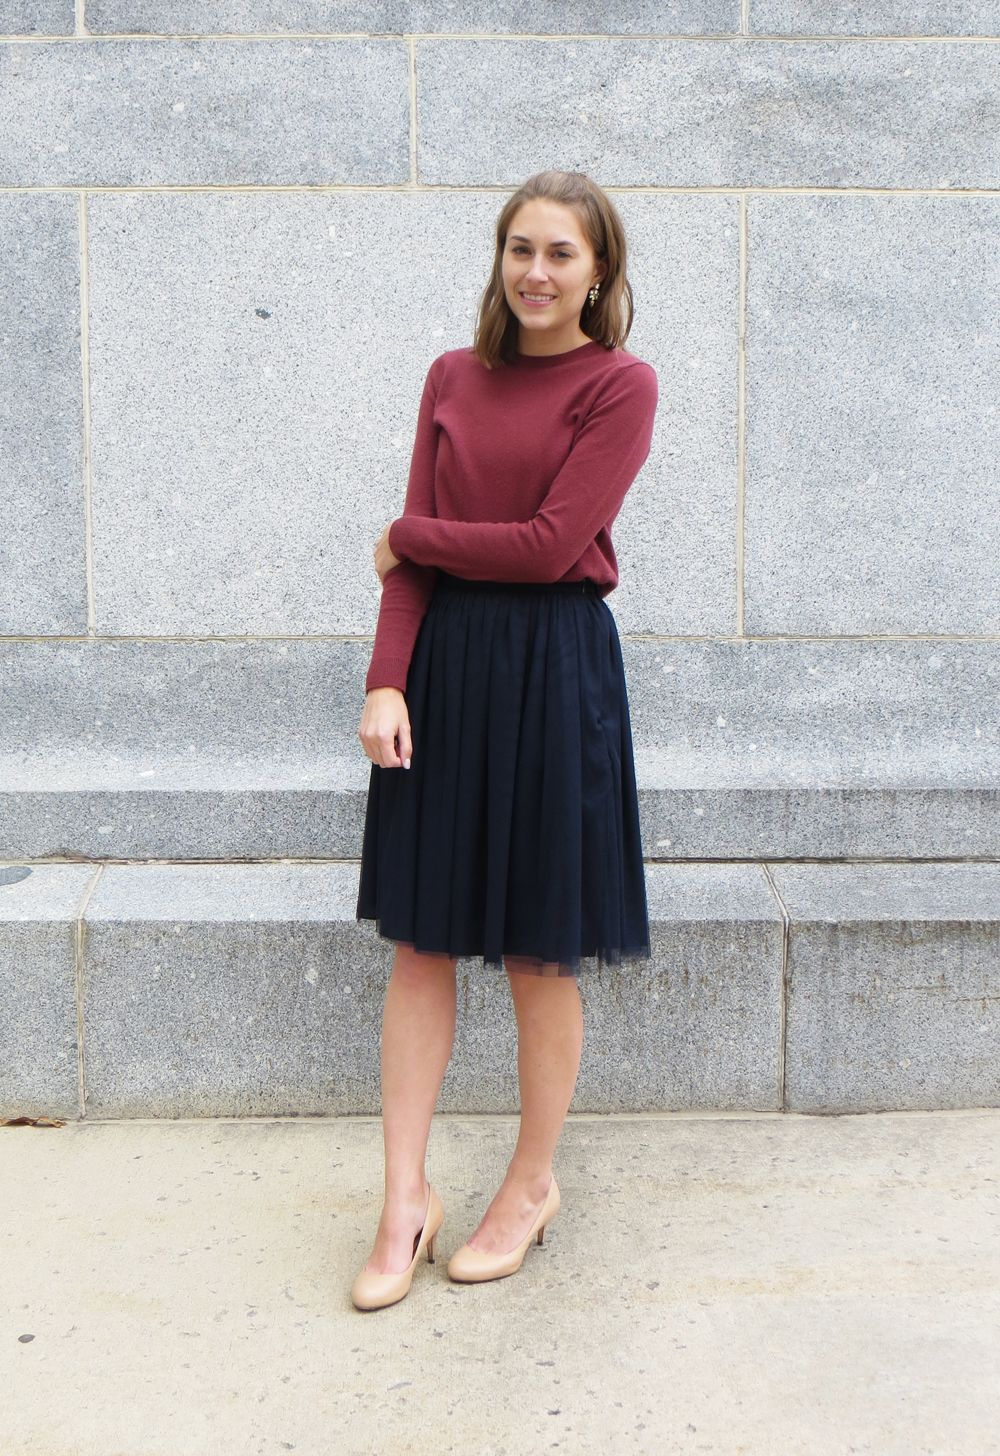 Grad Student Style General Exam Student Fashion Style Outfits